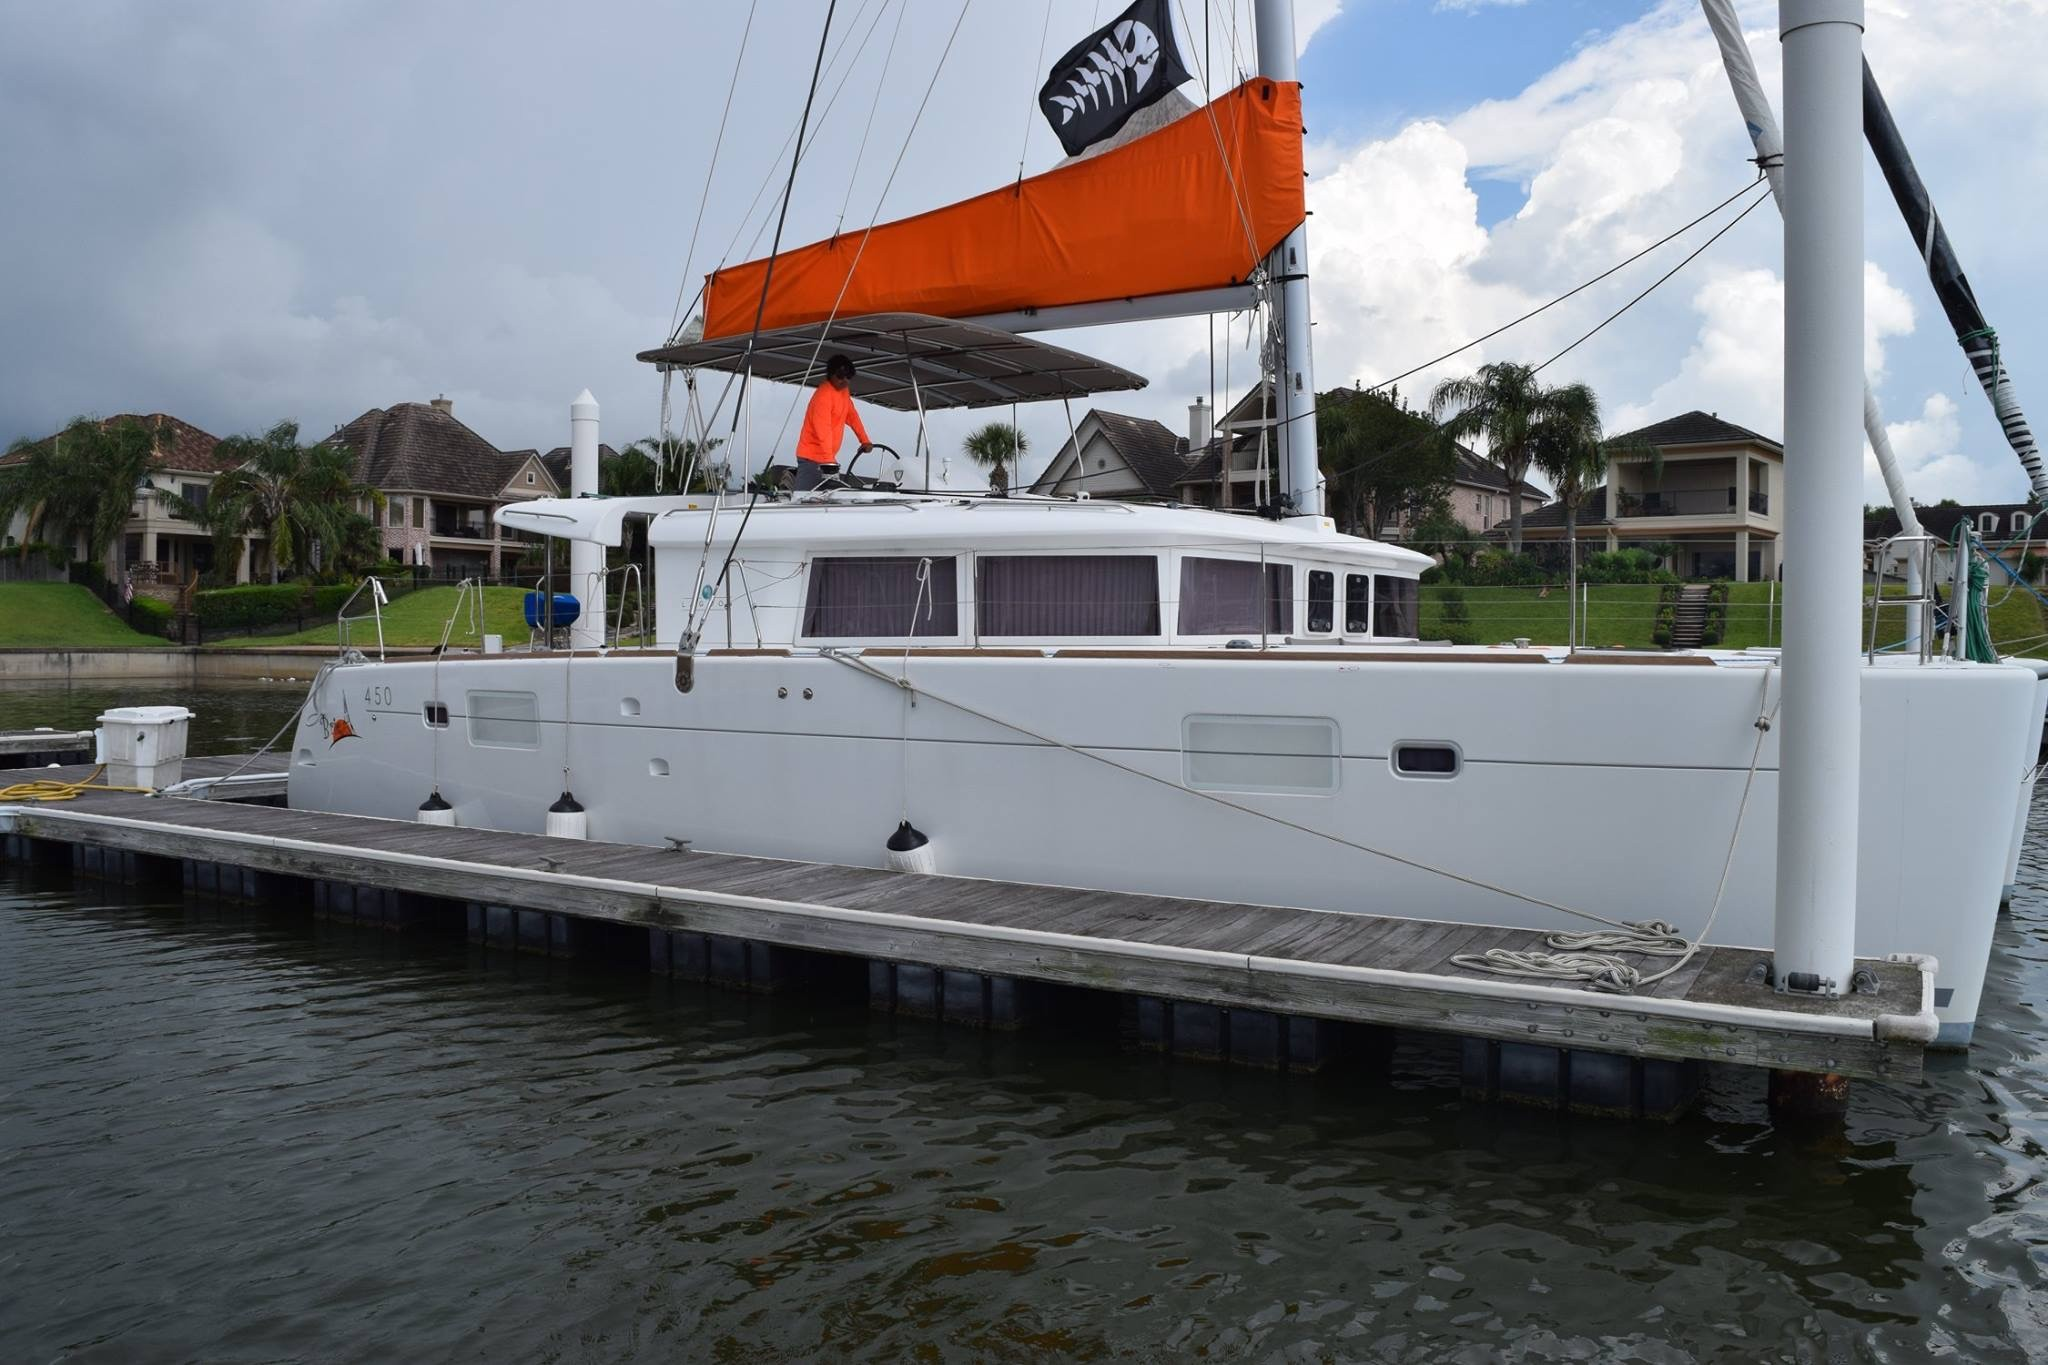 Used Sail Catamaran for Sale 2015 Lagoon 450 Boat Highlights